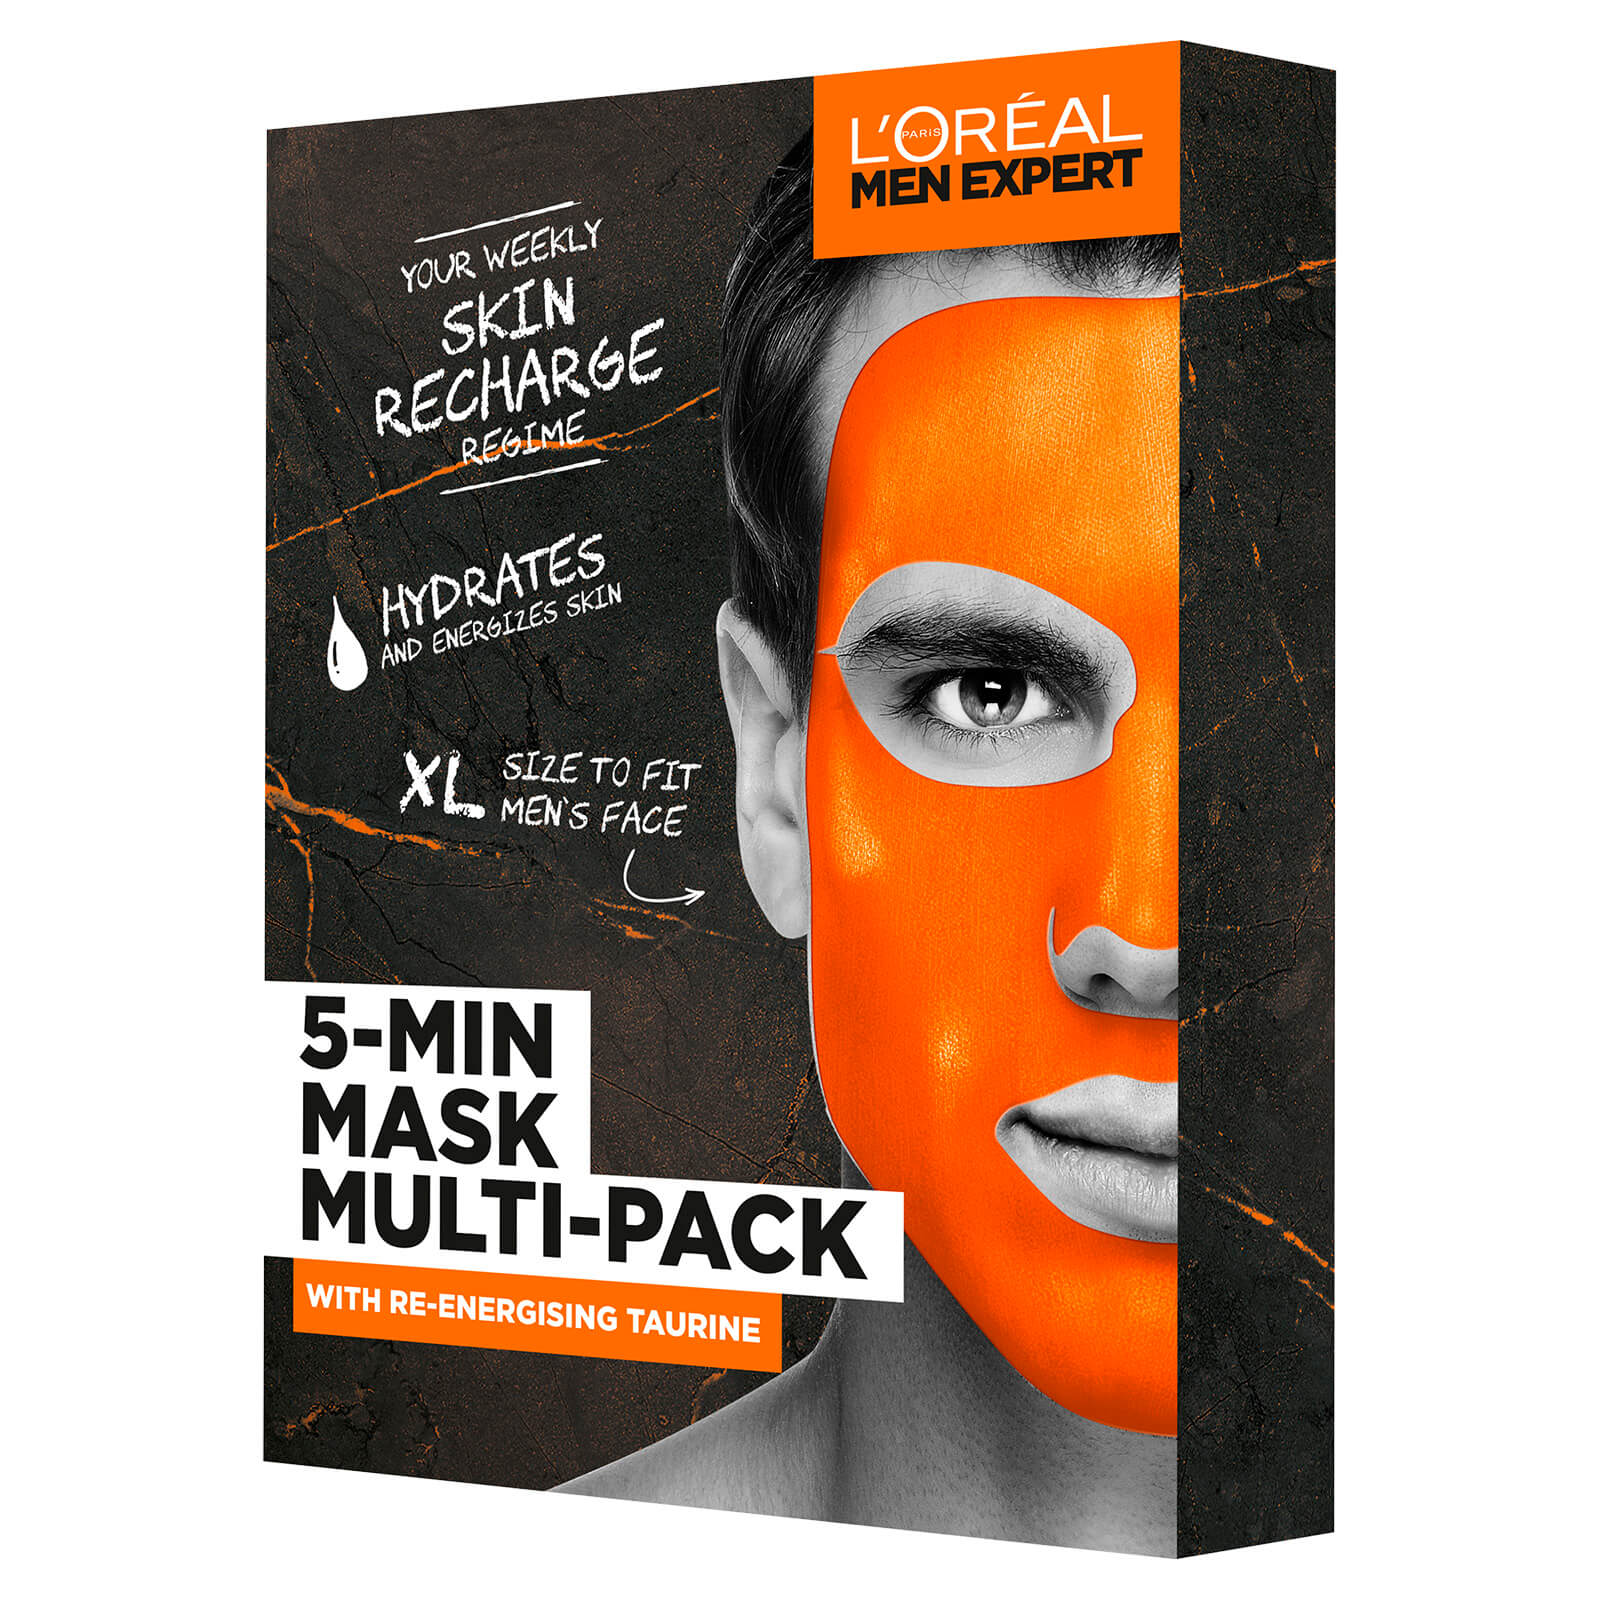 L'Oreal Paris Men Expert 5 Minute Mask Multi-Pack with Re-Energising Taurine Set for Him (Worth £15.00)